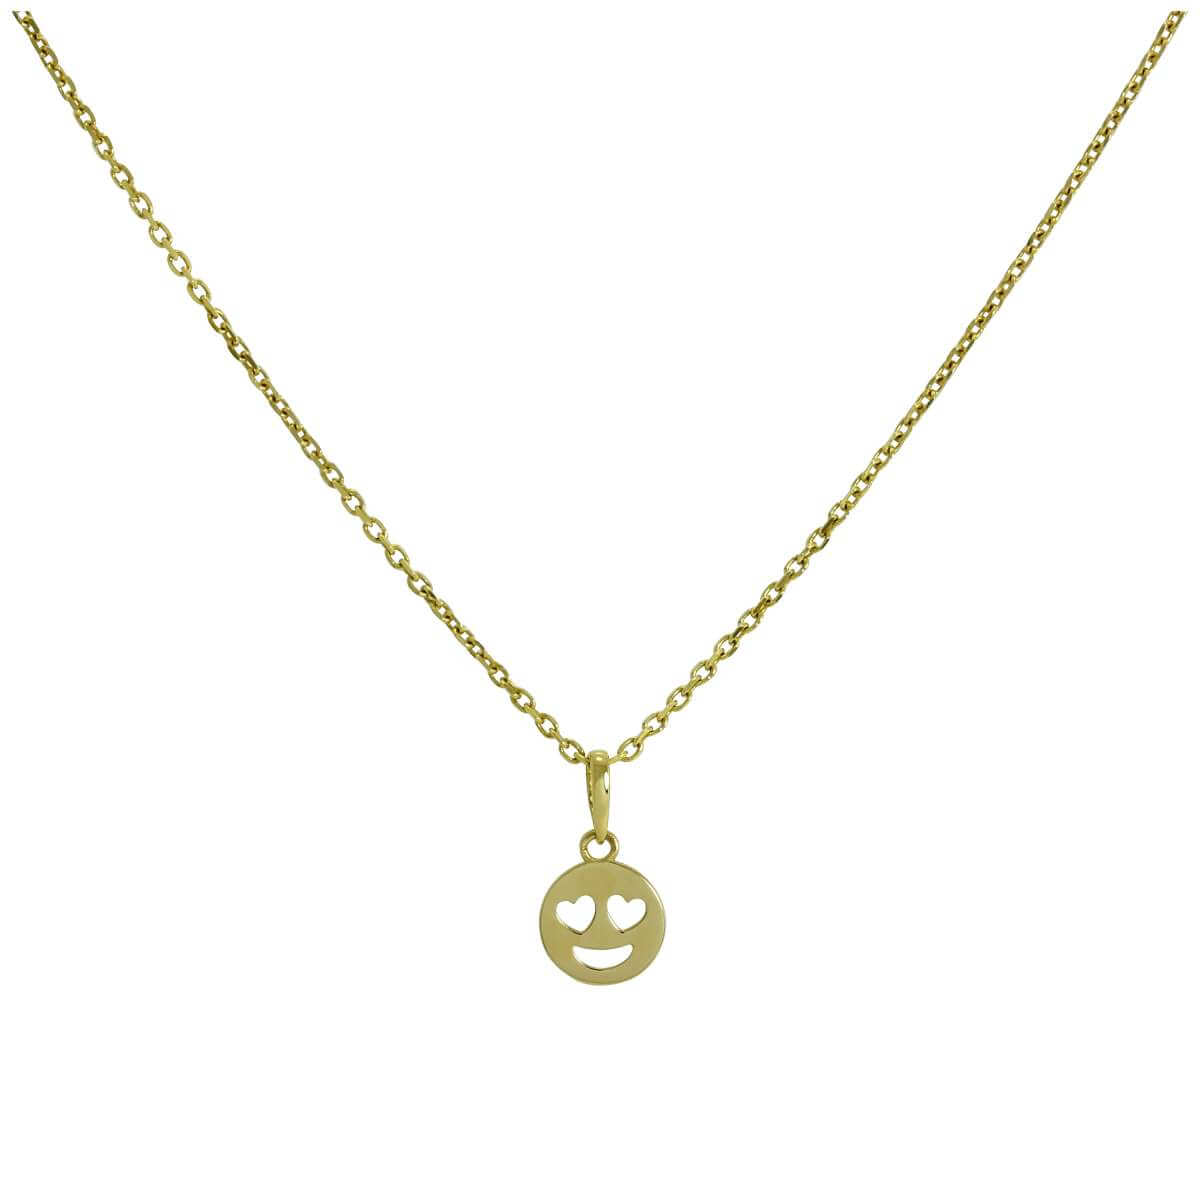 9ct Gold Heart Eyes Emoji Pendant on Chain 16 - 20 Inches